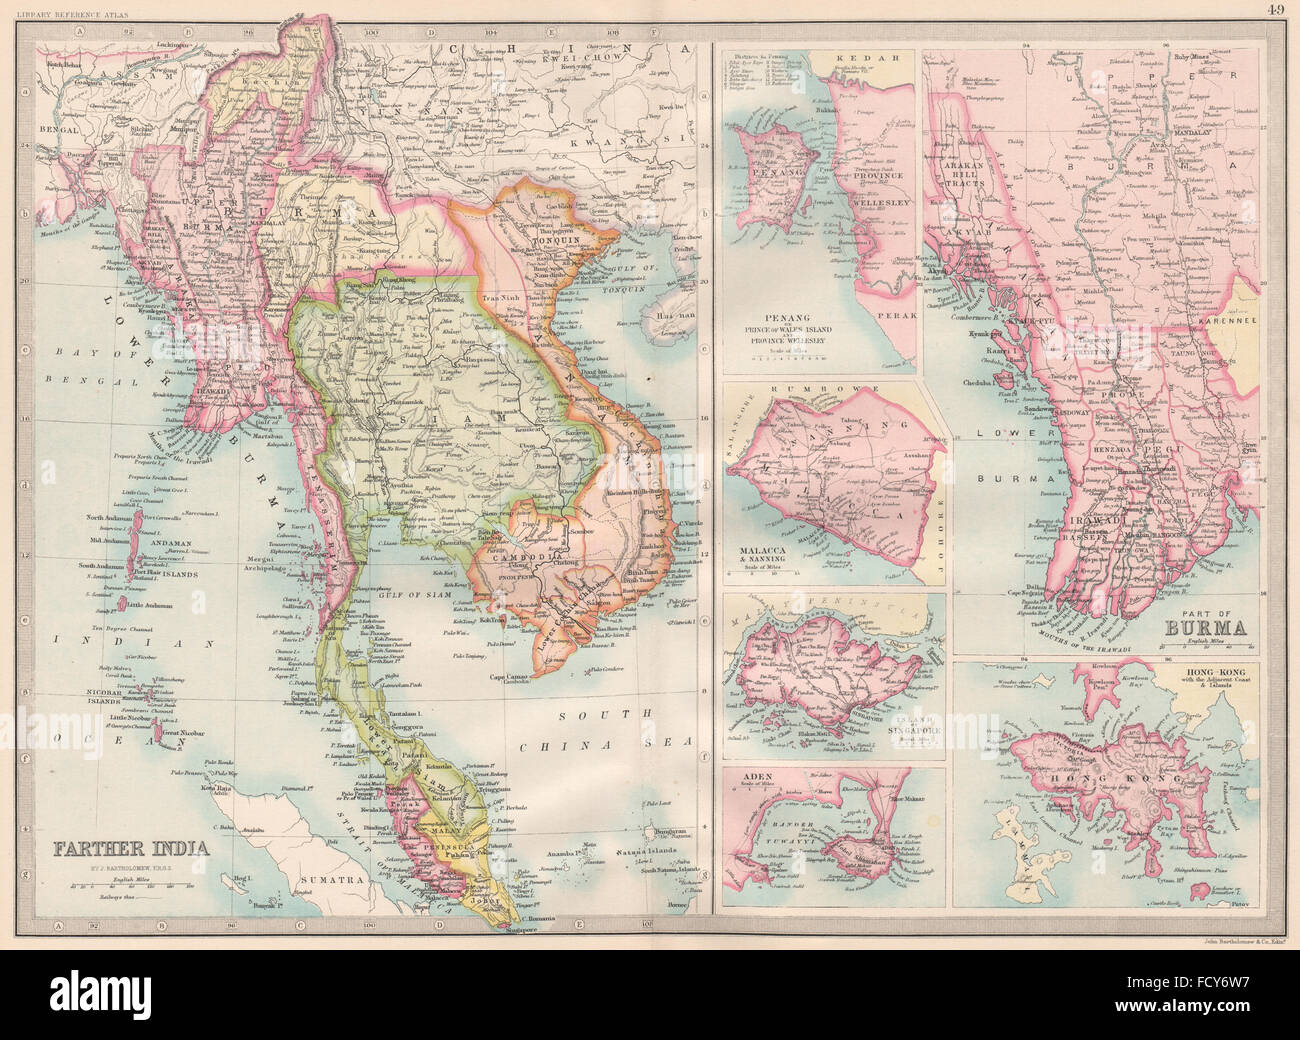 Indochinabritish portspenang malacca singapore aden hong stock indochinabritish portspenang malacca singapore aden hong kongkachin 1890 map gumiabroncs Image collections